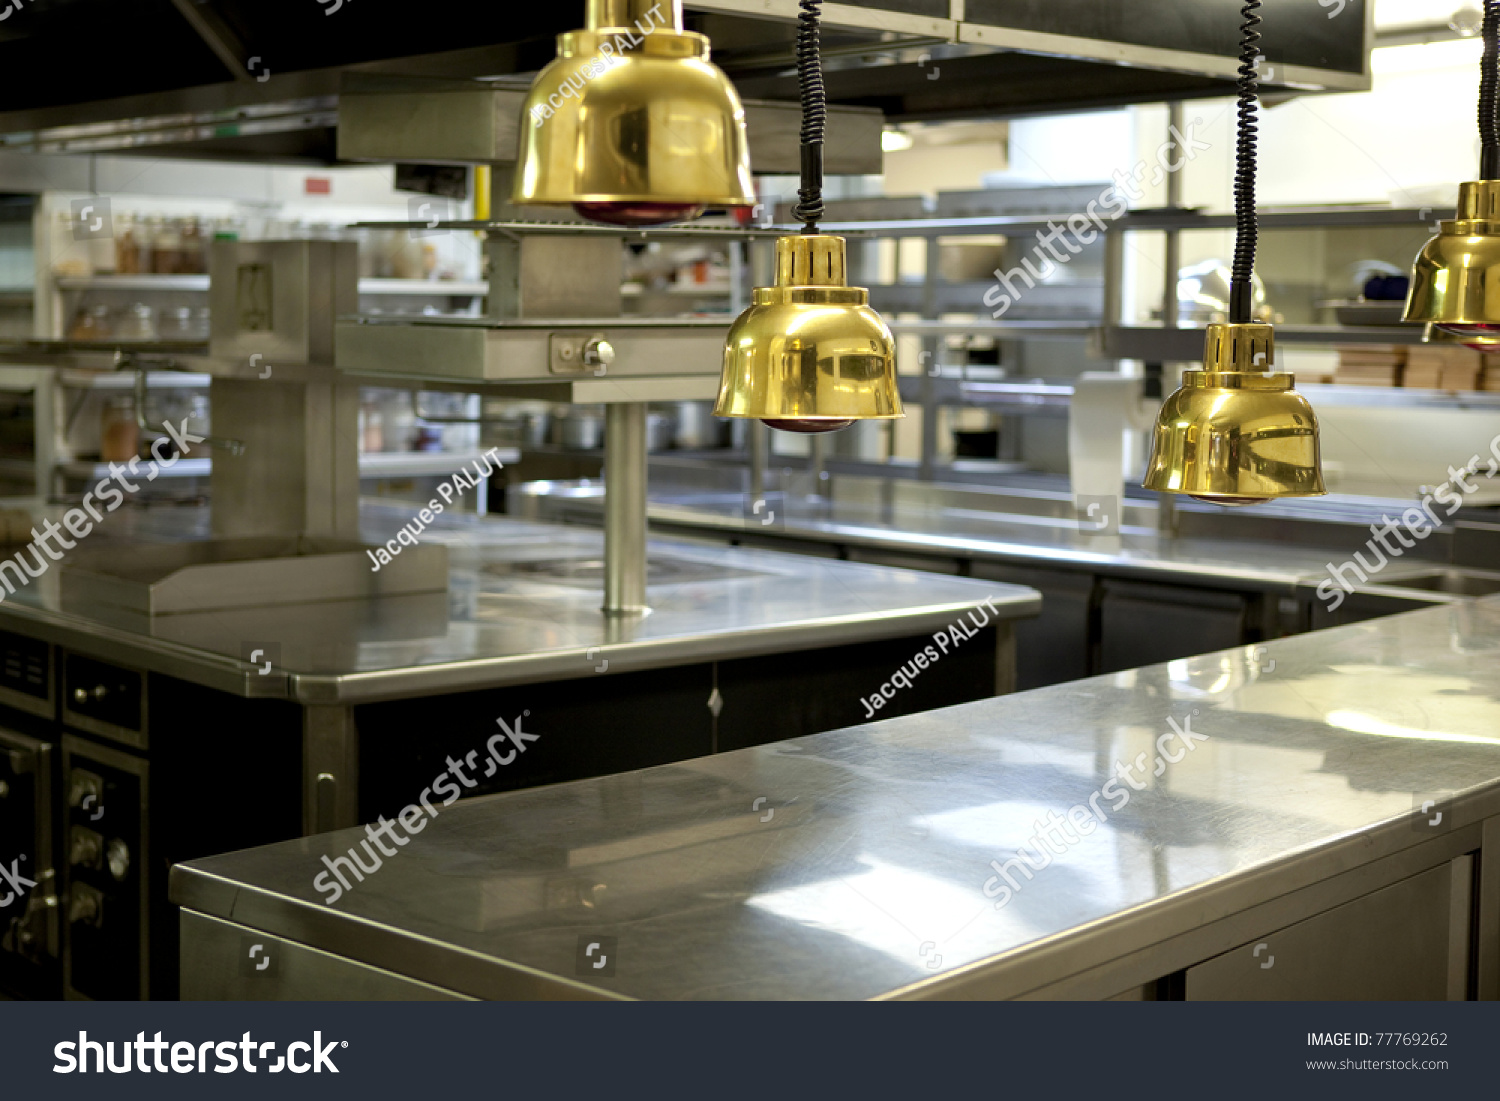 Exterior: Professional Kitchen In A Restaurant Stock Photo 77769262